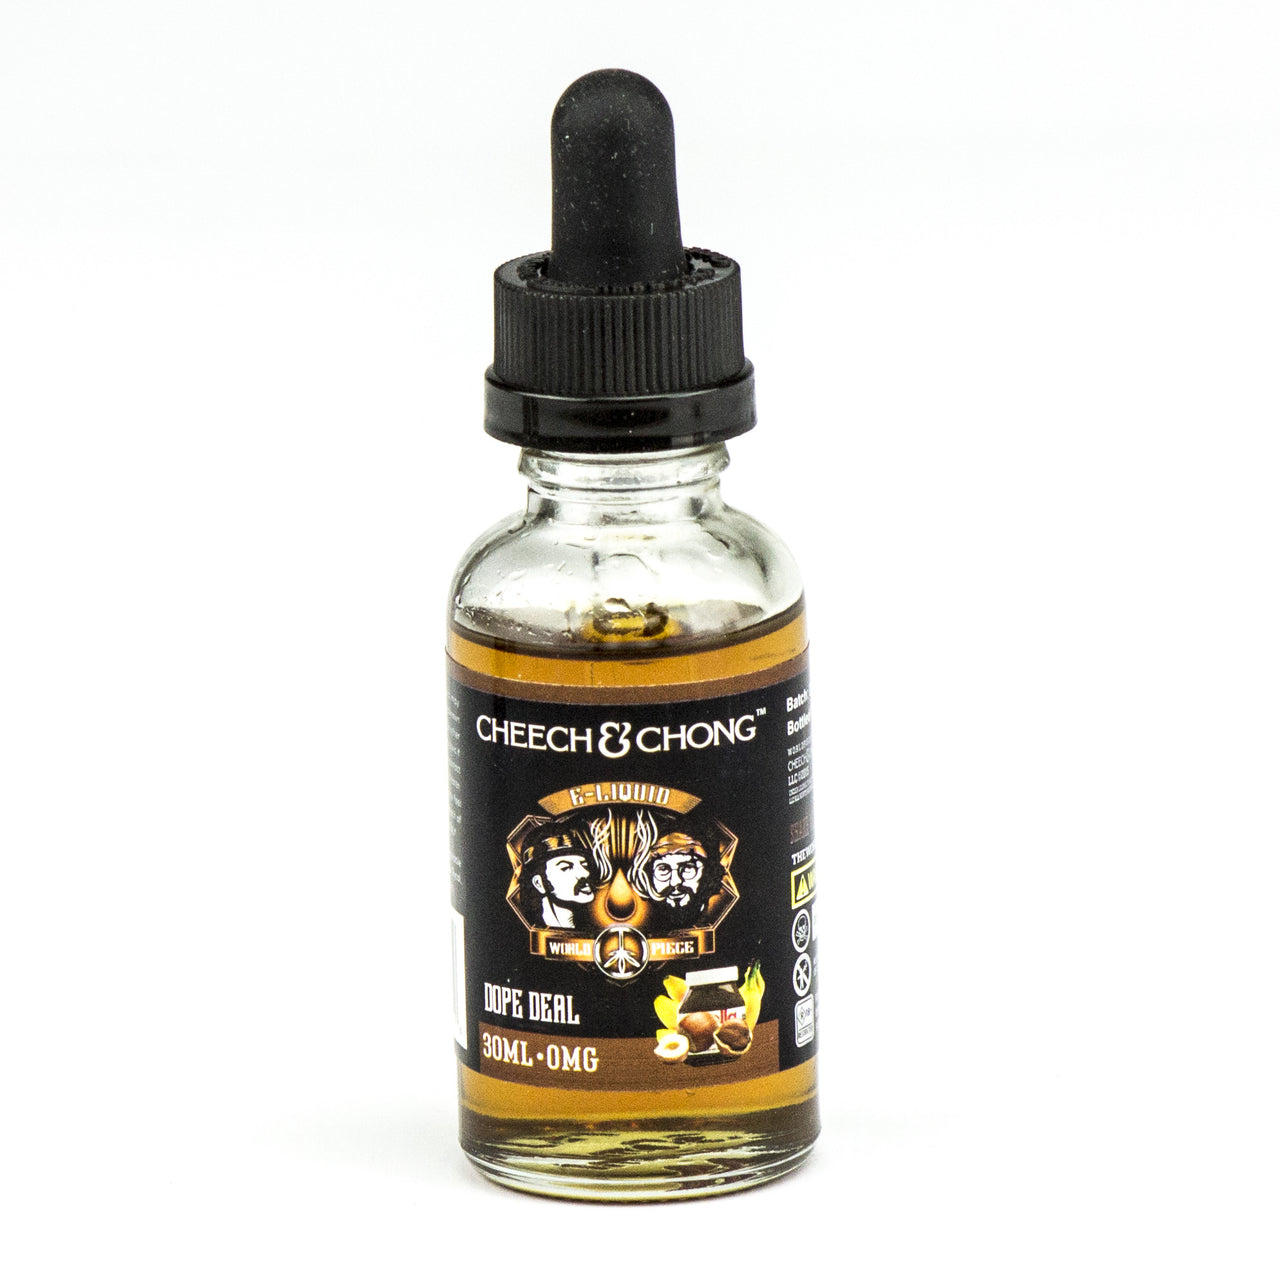 Cheech & Chong Eliquid - Dope Deal